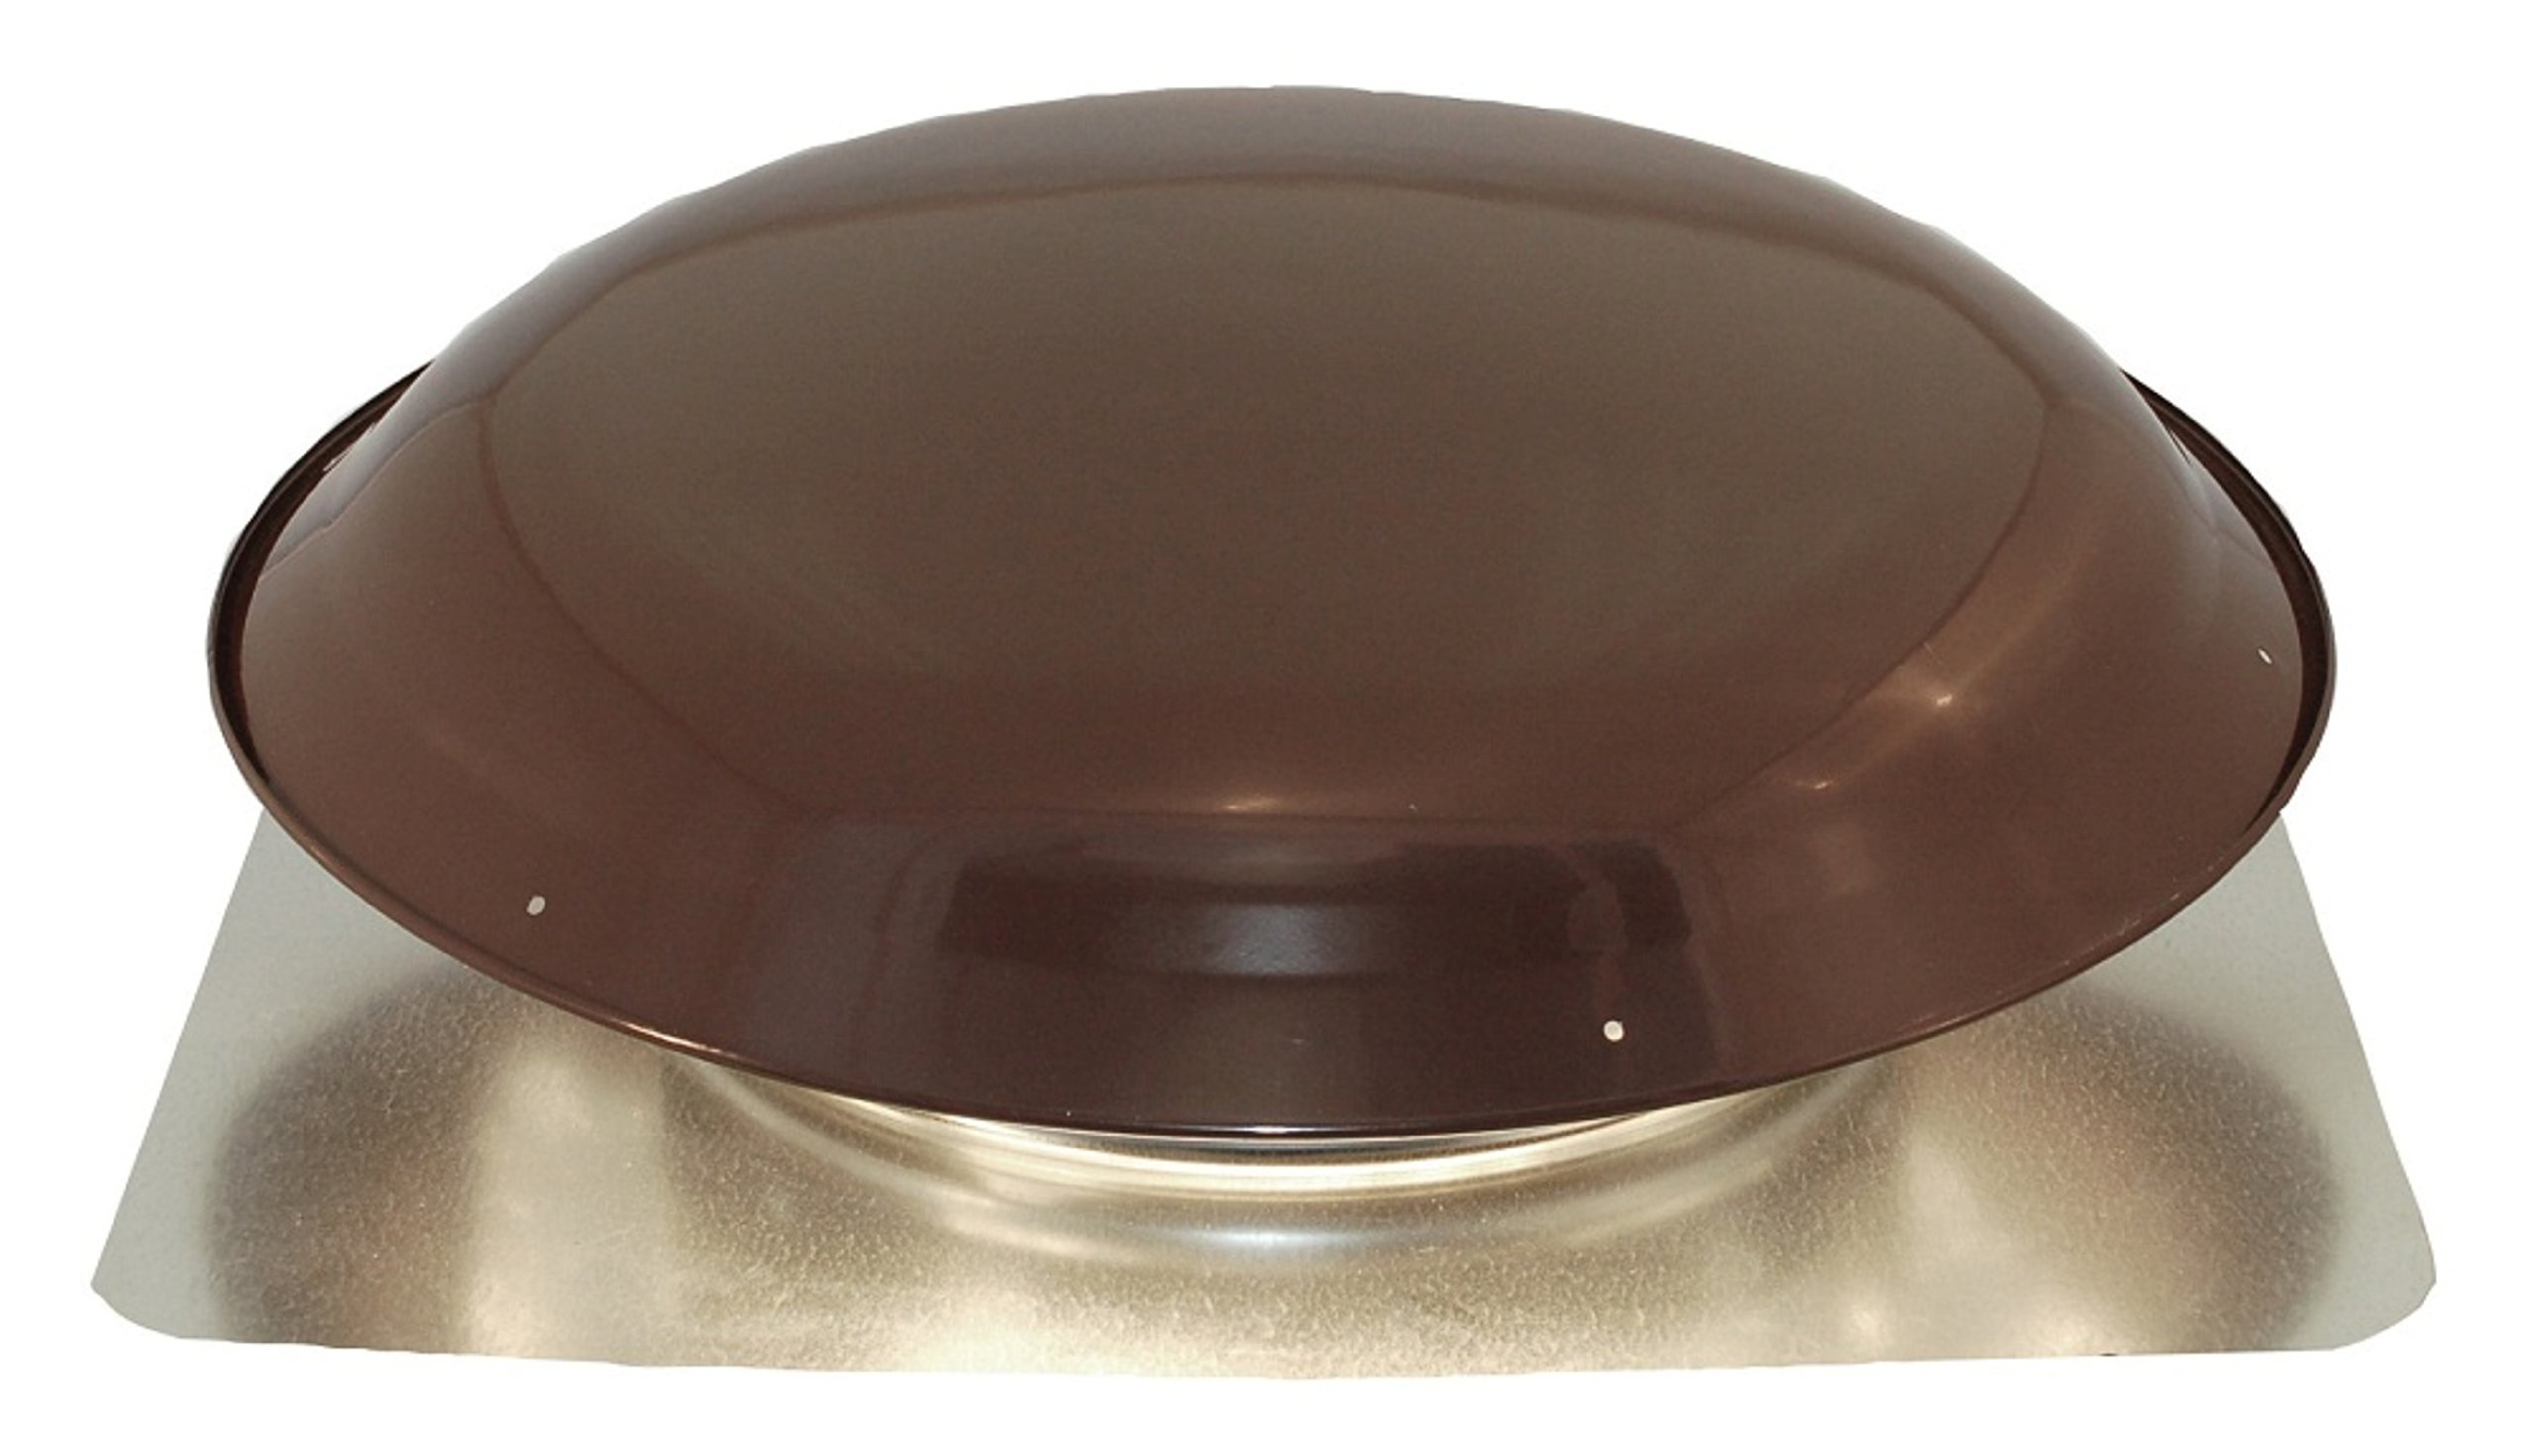 Cool Attic CX1000AMBR Power Roof Galvanized Steel Vent Dome with 3.4 Amp Motor, Brown